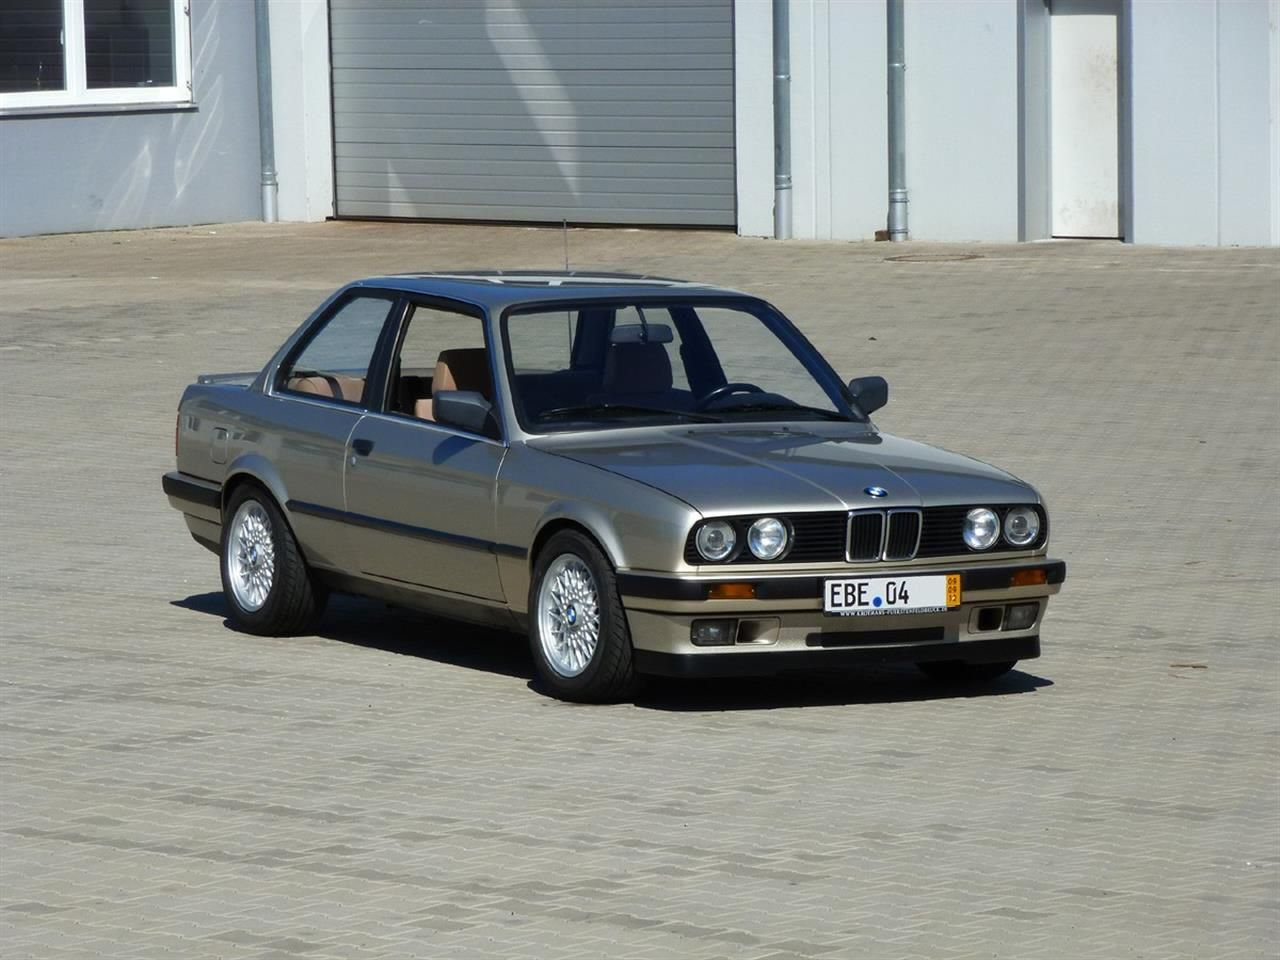 koning sleeper koop deze bmw 316i met v8. Black Bedroom Furniture Sets. Home Design Ideas